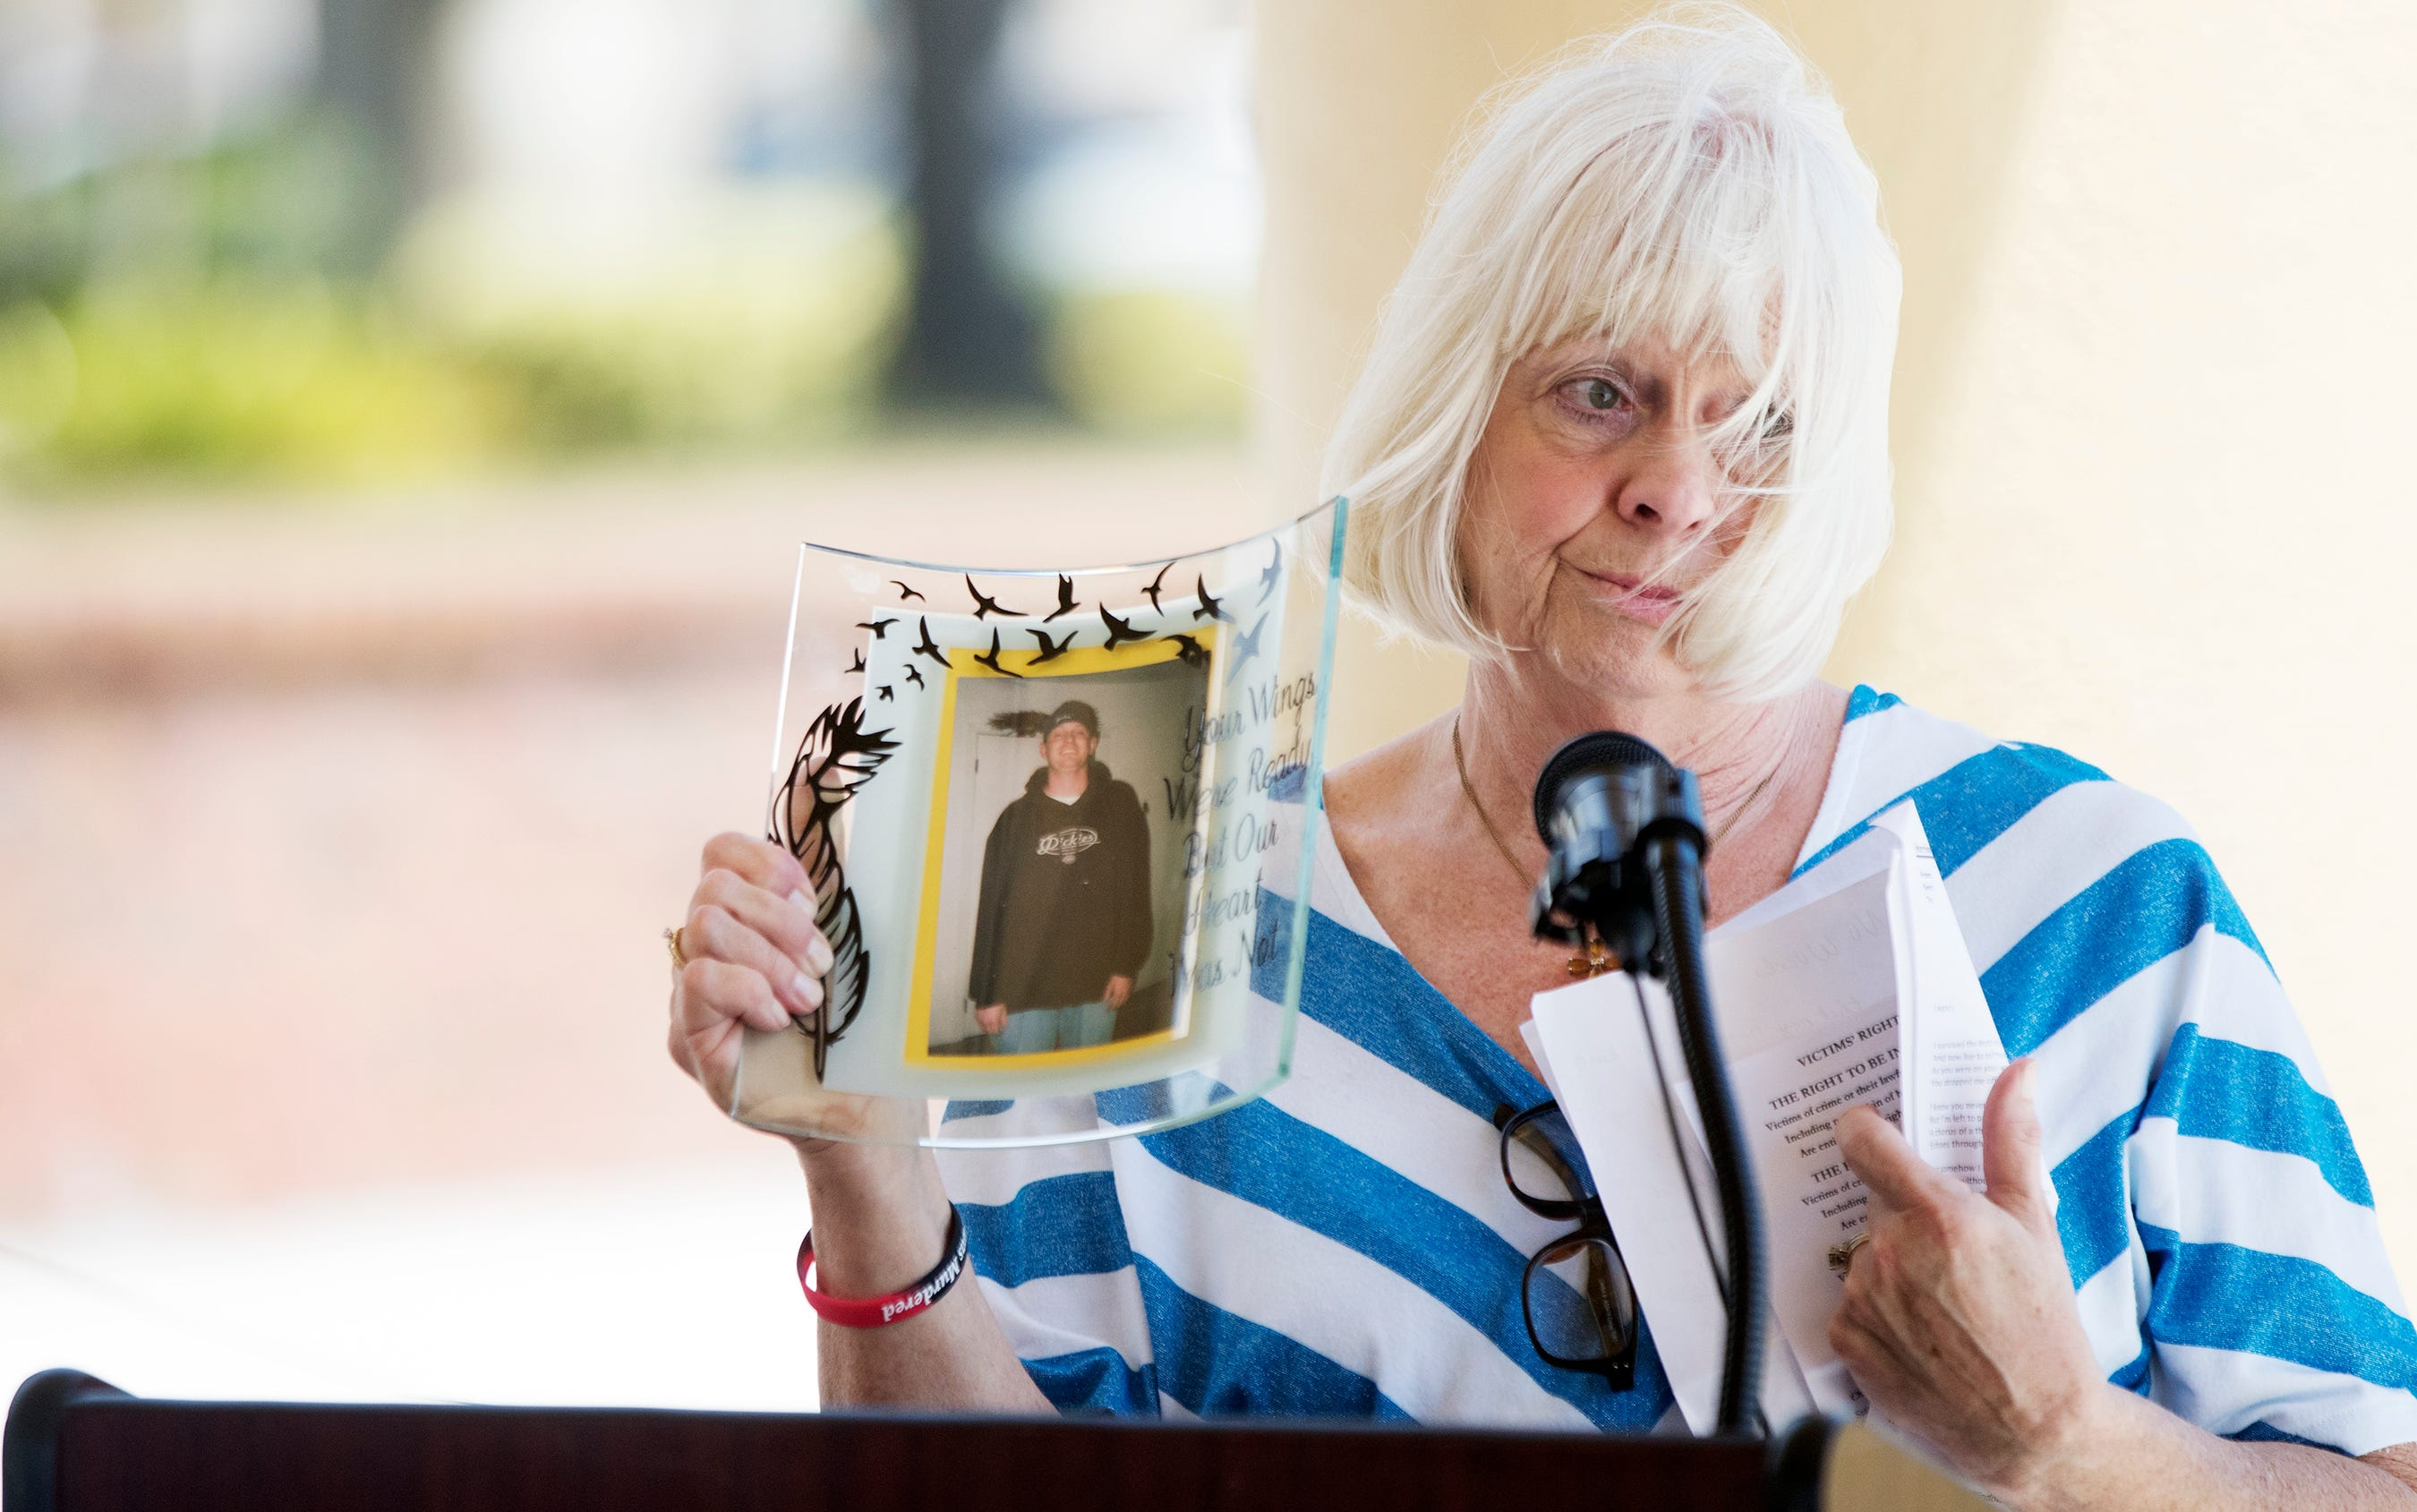 Debbie Harrison honored her son, Joshua Kent, during a National Crime Victims' Rights Week memorial at Centennial Park in downtown Fort Myers on Sunday, Feb. 14, 2019. Kent was killed in 2006. The Victims Advocate office of the Fort Myers Police Department presented the event. Relatives of the victims shared memories of their loved ones.